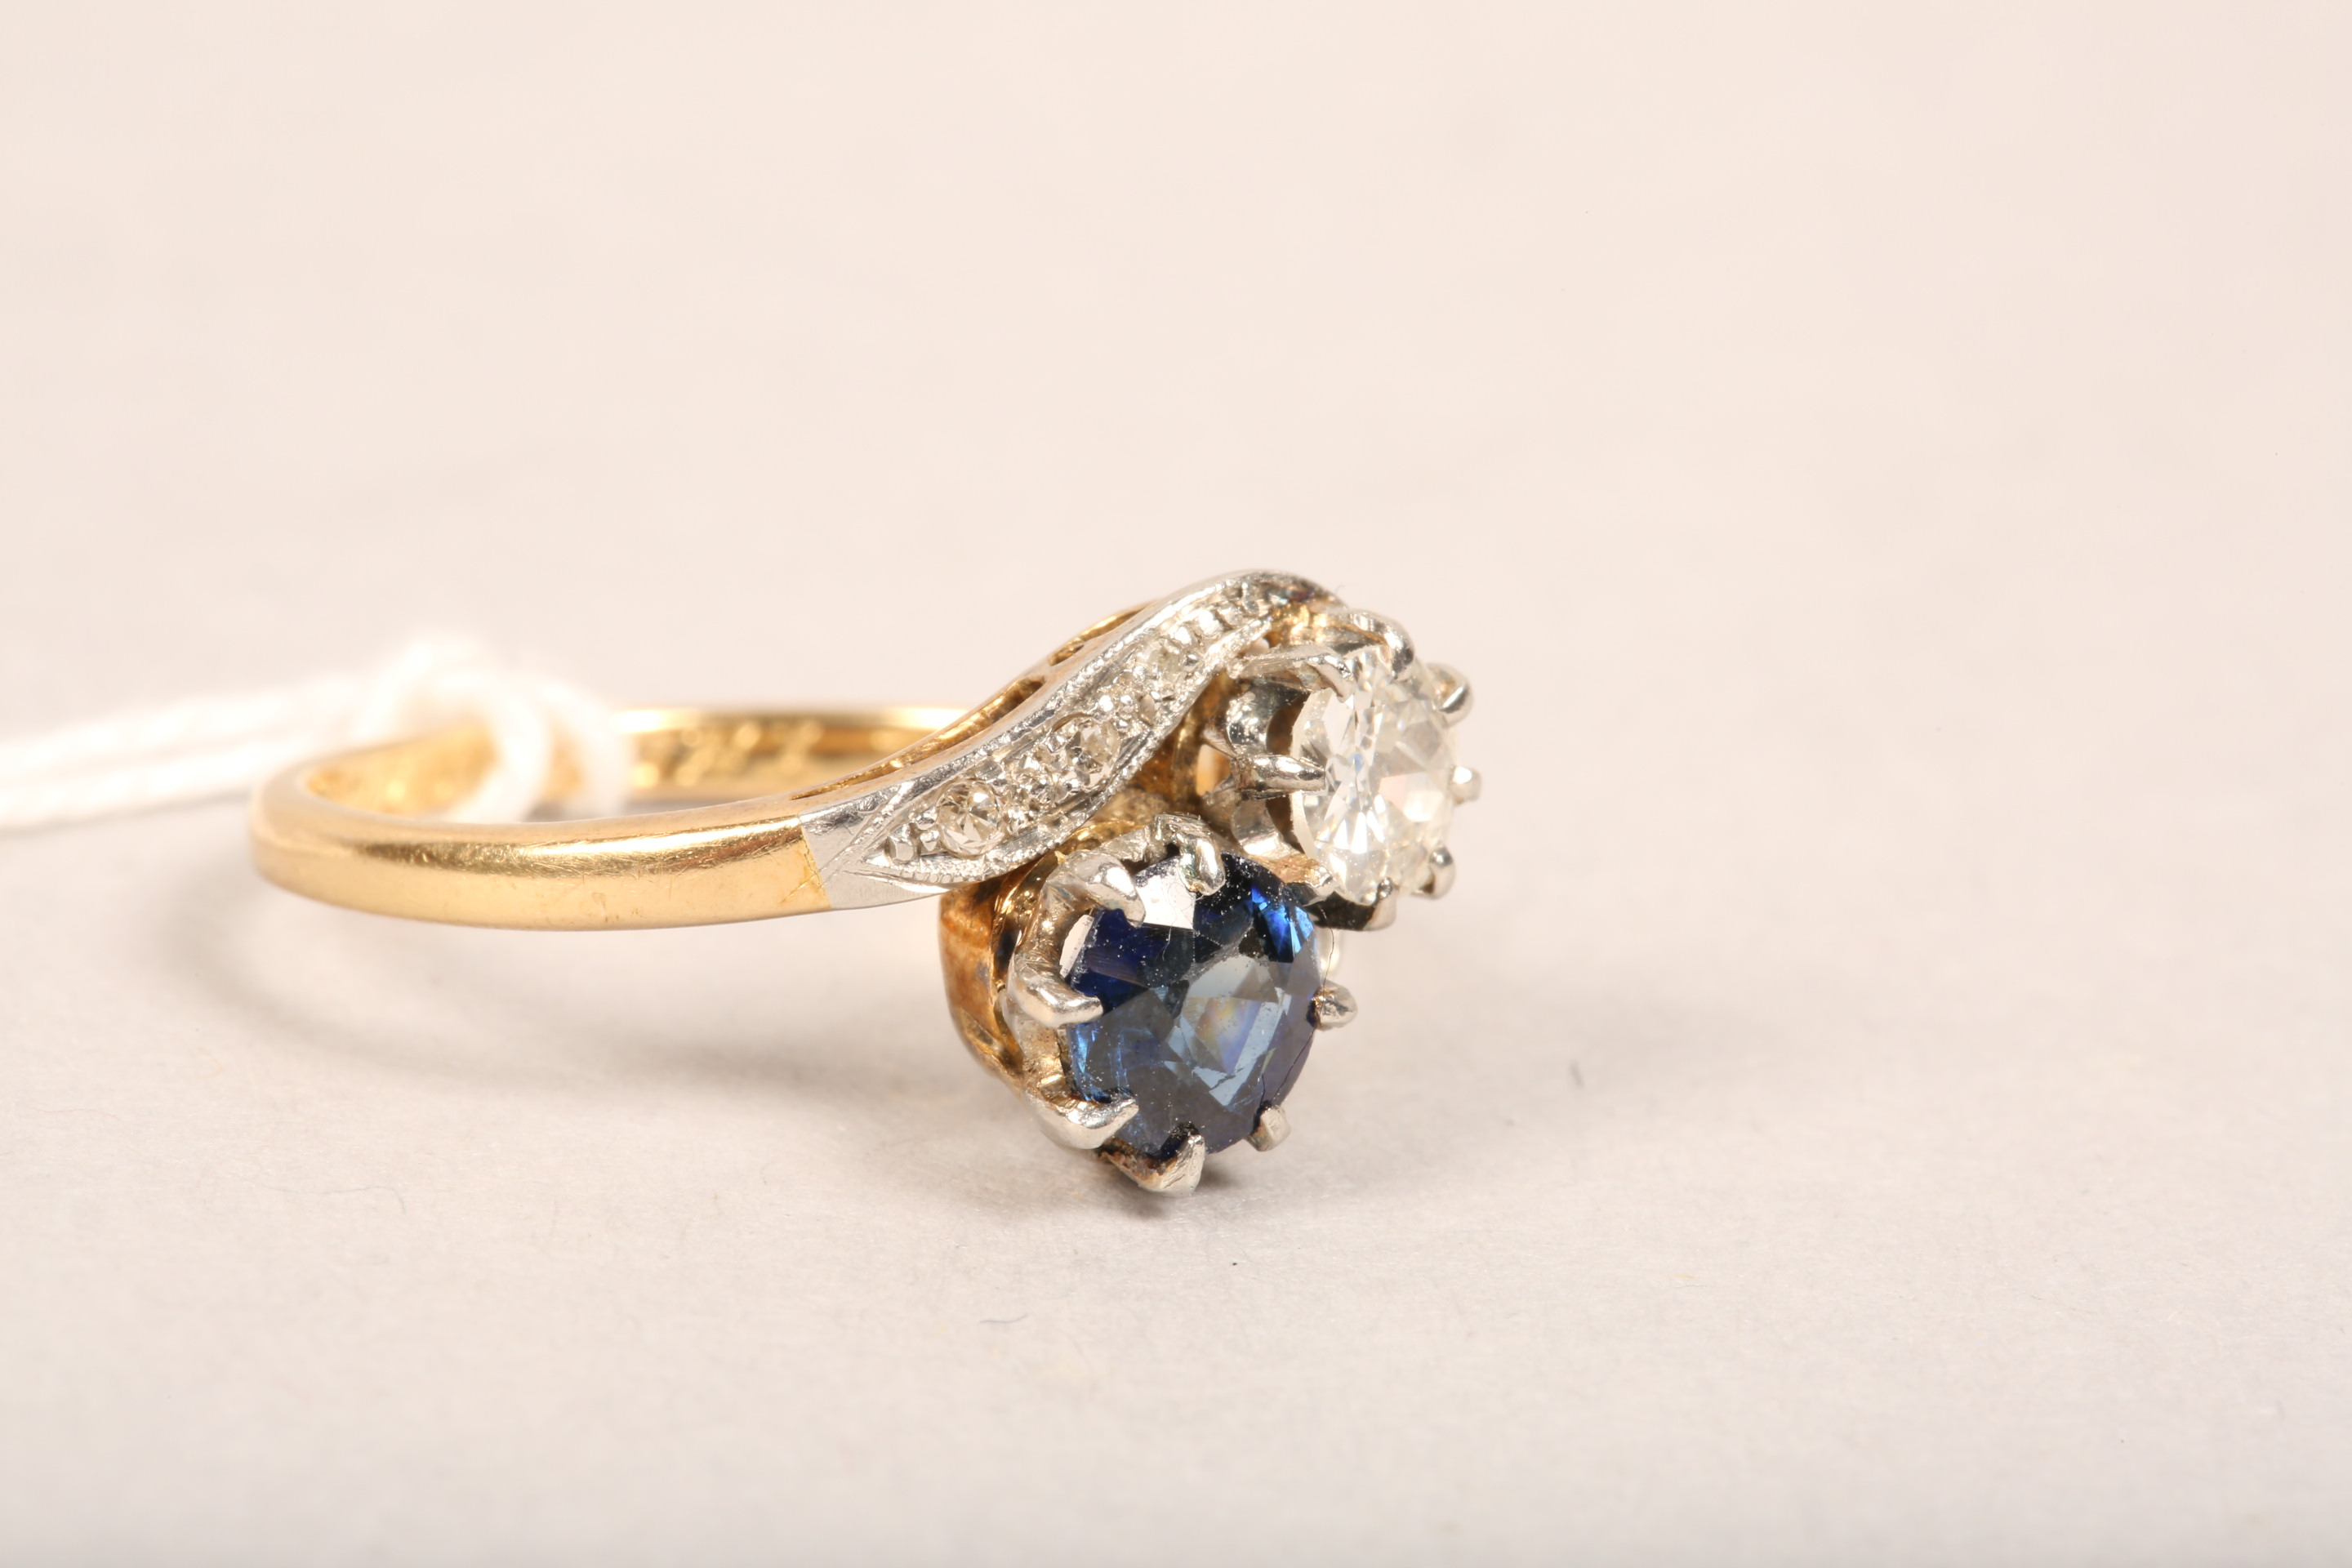 Ladies 18 carat gold diamond and sapphire ring, 0.33 diamond and 0.5 sapphire in twist setting, - Image 5 of 8